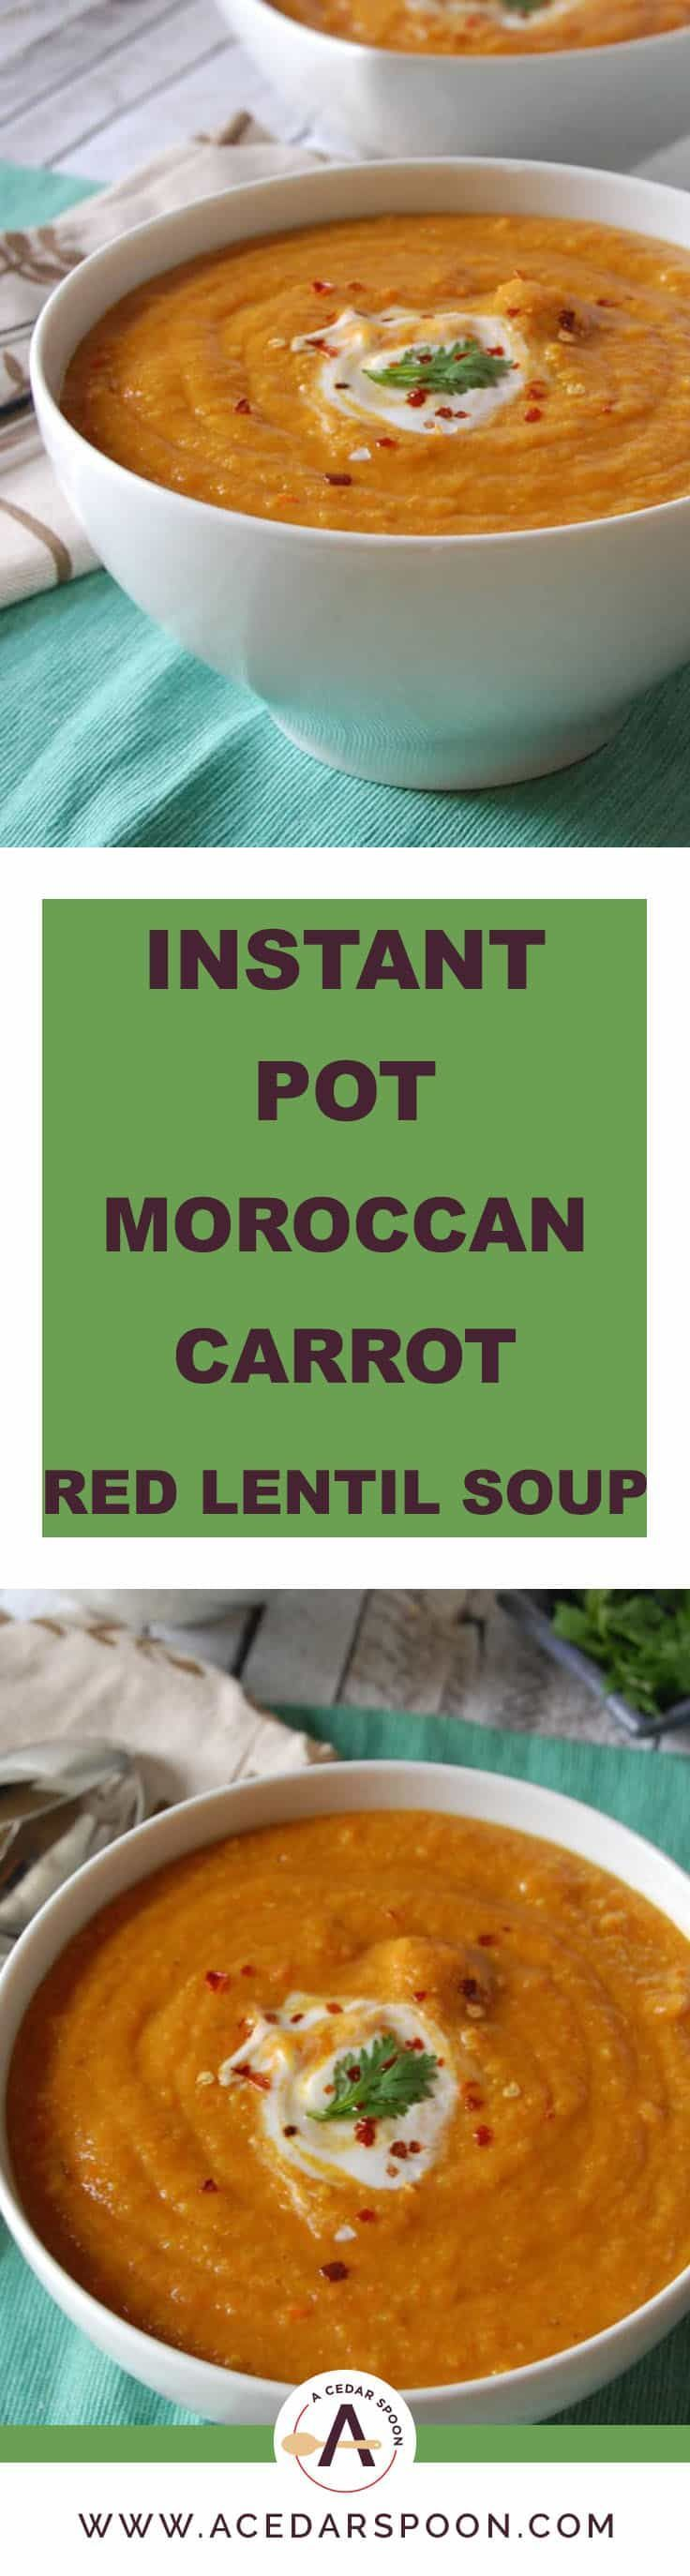 Instant Pot Moroccan Carrot Red Lentil Soup is a meatless soup recipe packed full of flavor! Cumin, turmeric, coriander, paprika and cinnamon compliment the red lentils and carrots, creating a creamy, filling soup. It cooks in your pressure cooker in no time at all! // A Cedar Spoon #instantpot #pressurecooker #instapot #carrots #vegetables #vegetarian #soup #dinner #vegan #moroccan #lentils #redlentils #pulses #spices #healthy #cleaneating #wholefoods #mediterraneandiet #mediterraneanfood